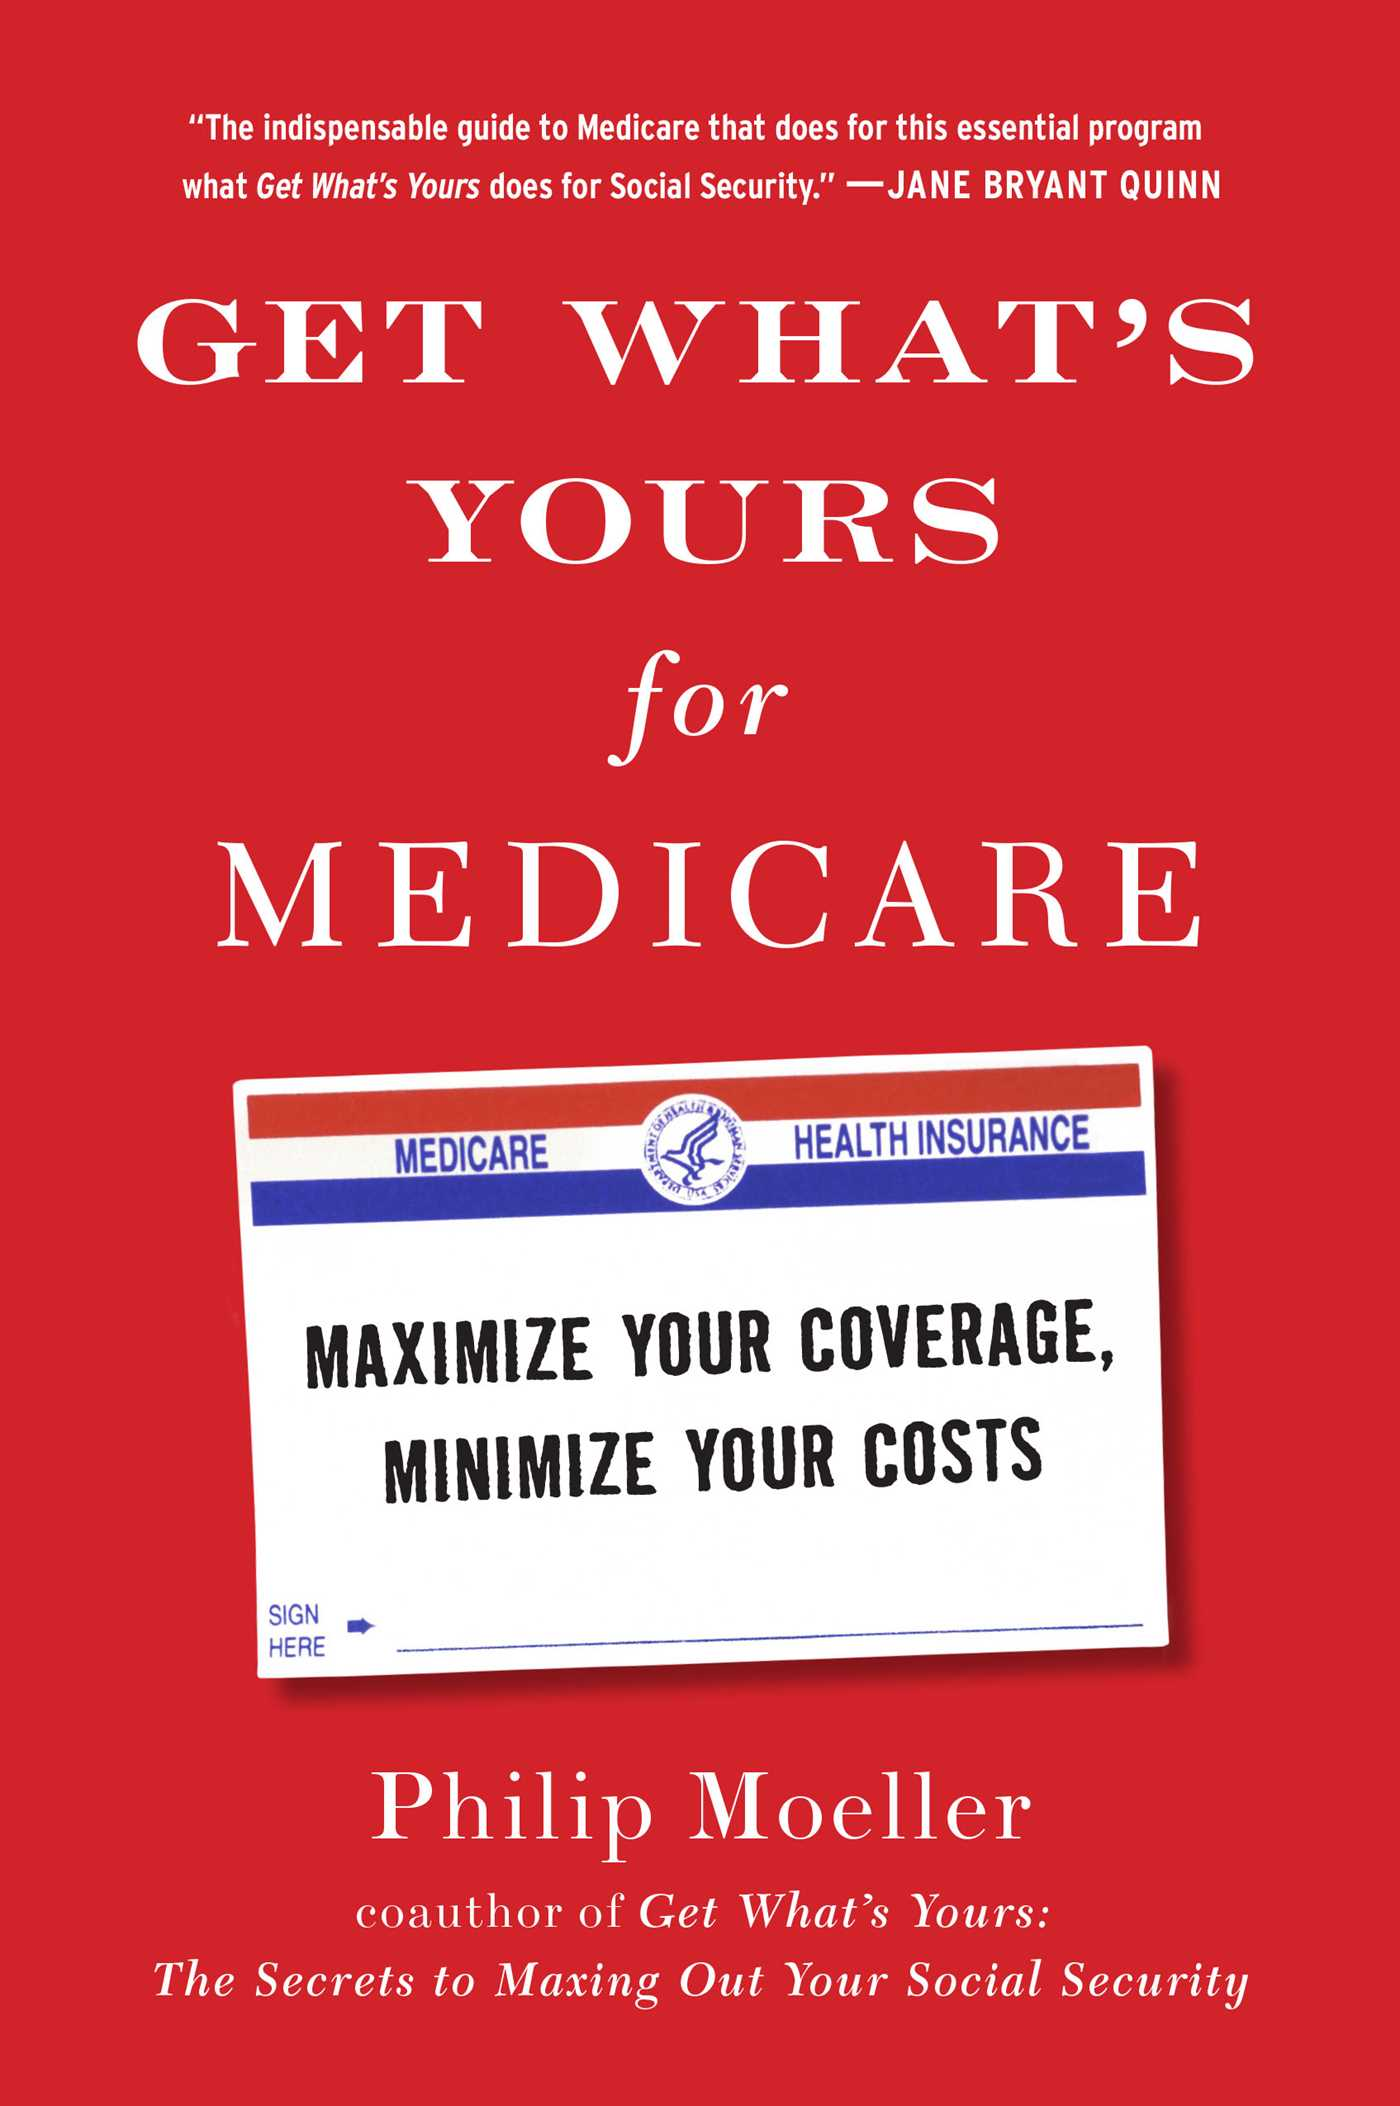 Download Ebook Get What's Yours for Medicare by Philip Moeller Pdf